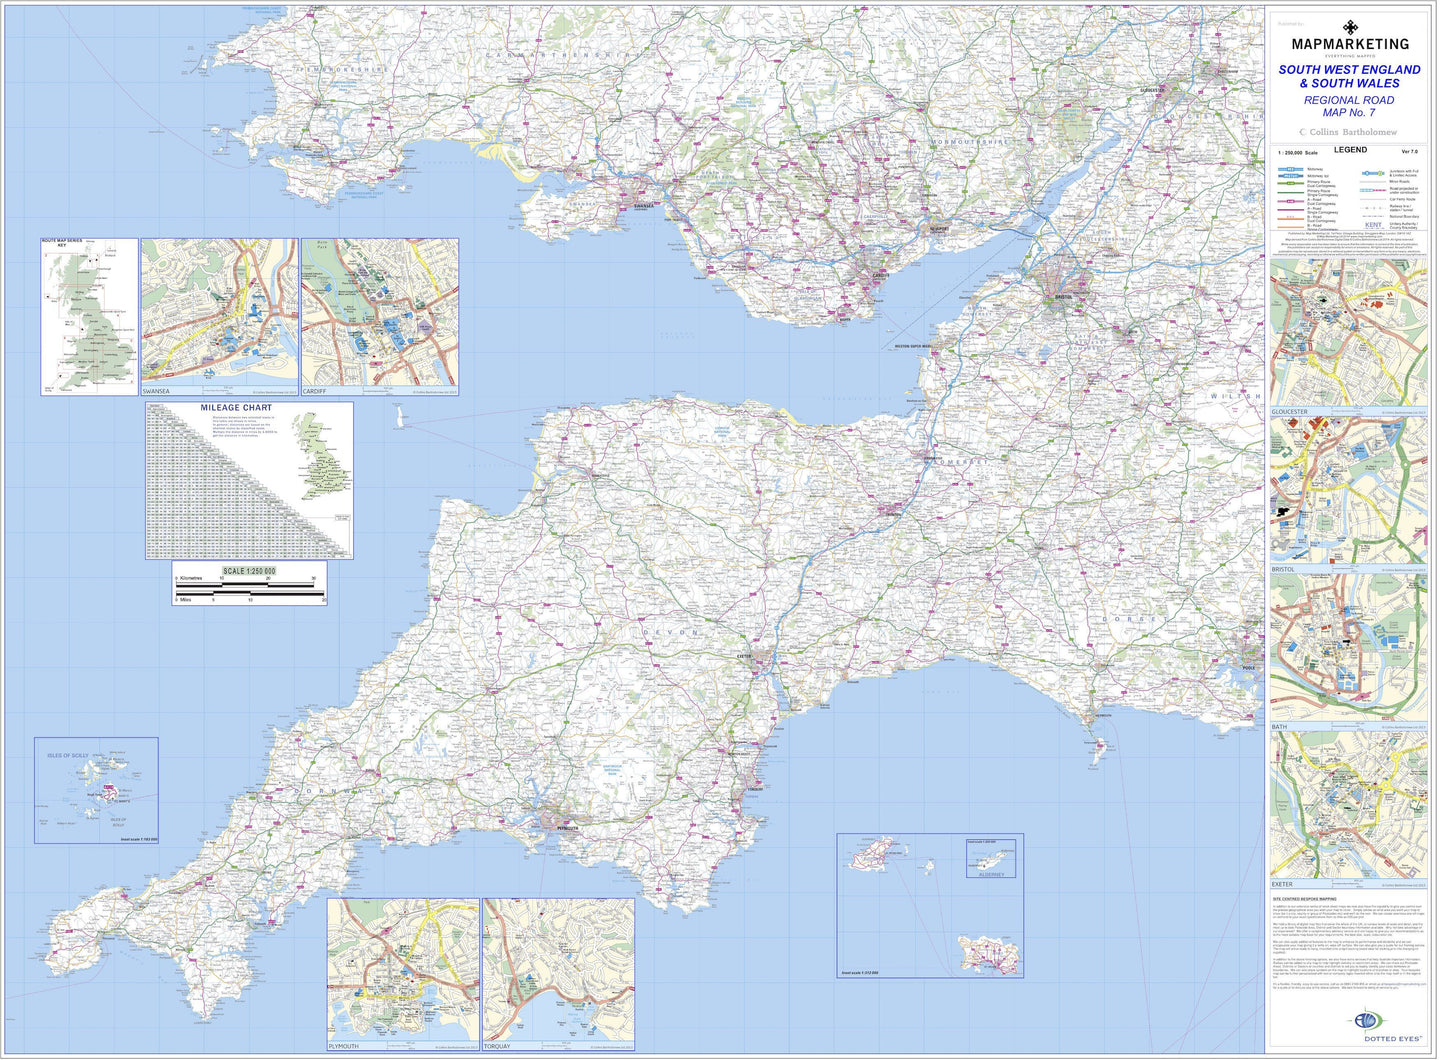 South West England And South Wales Regional Road Map Wall Map 7